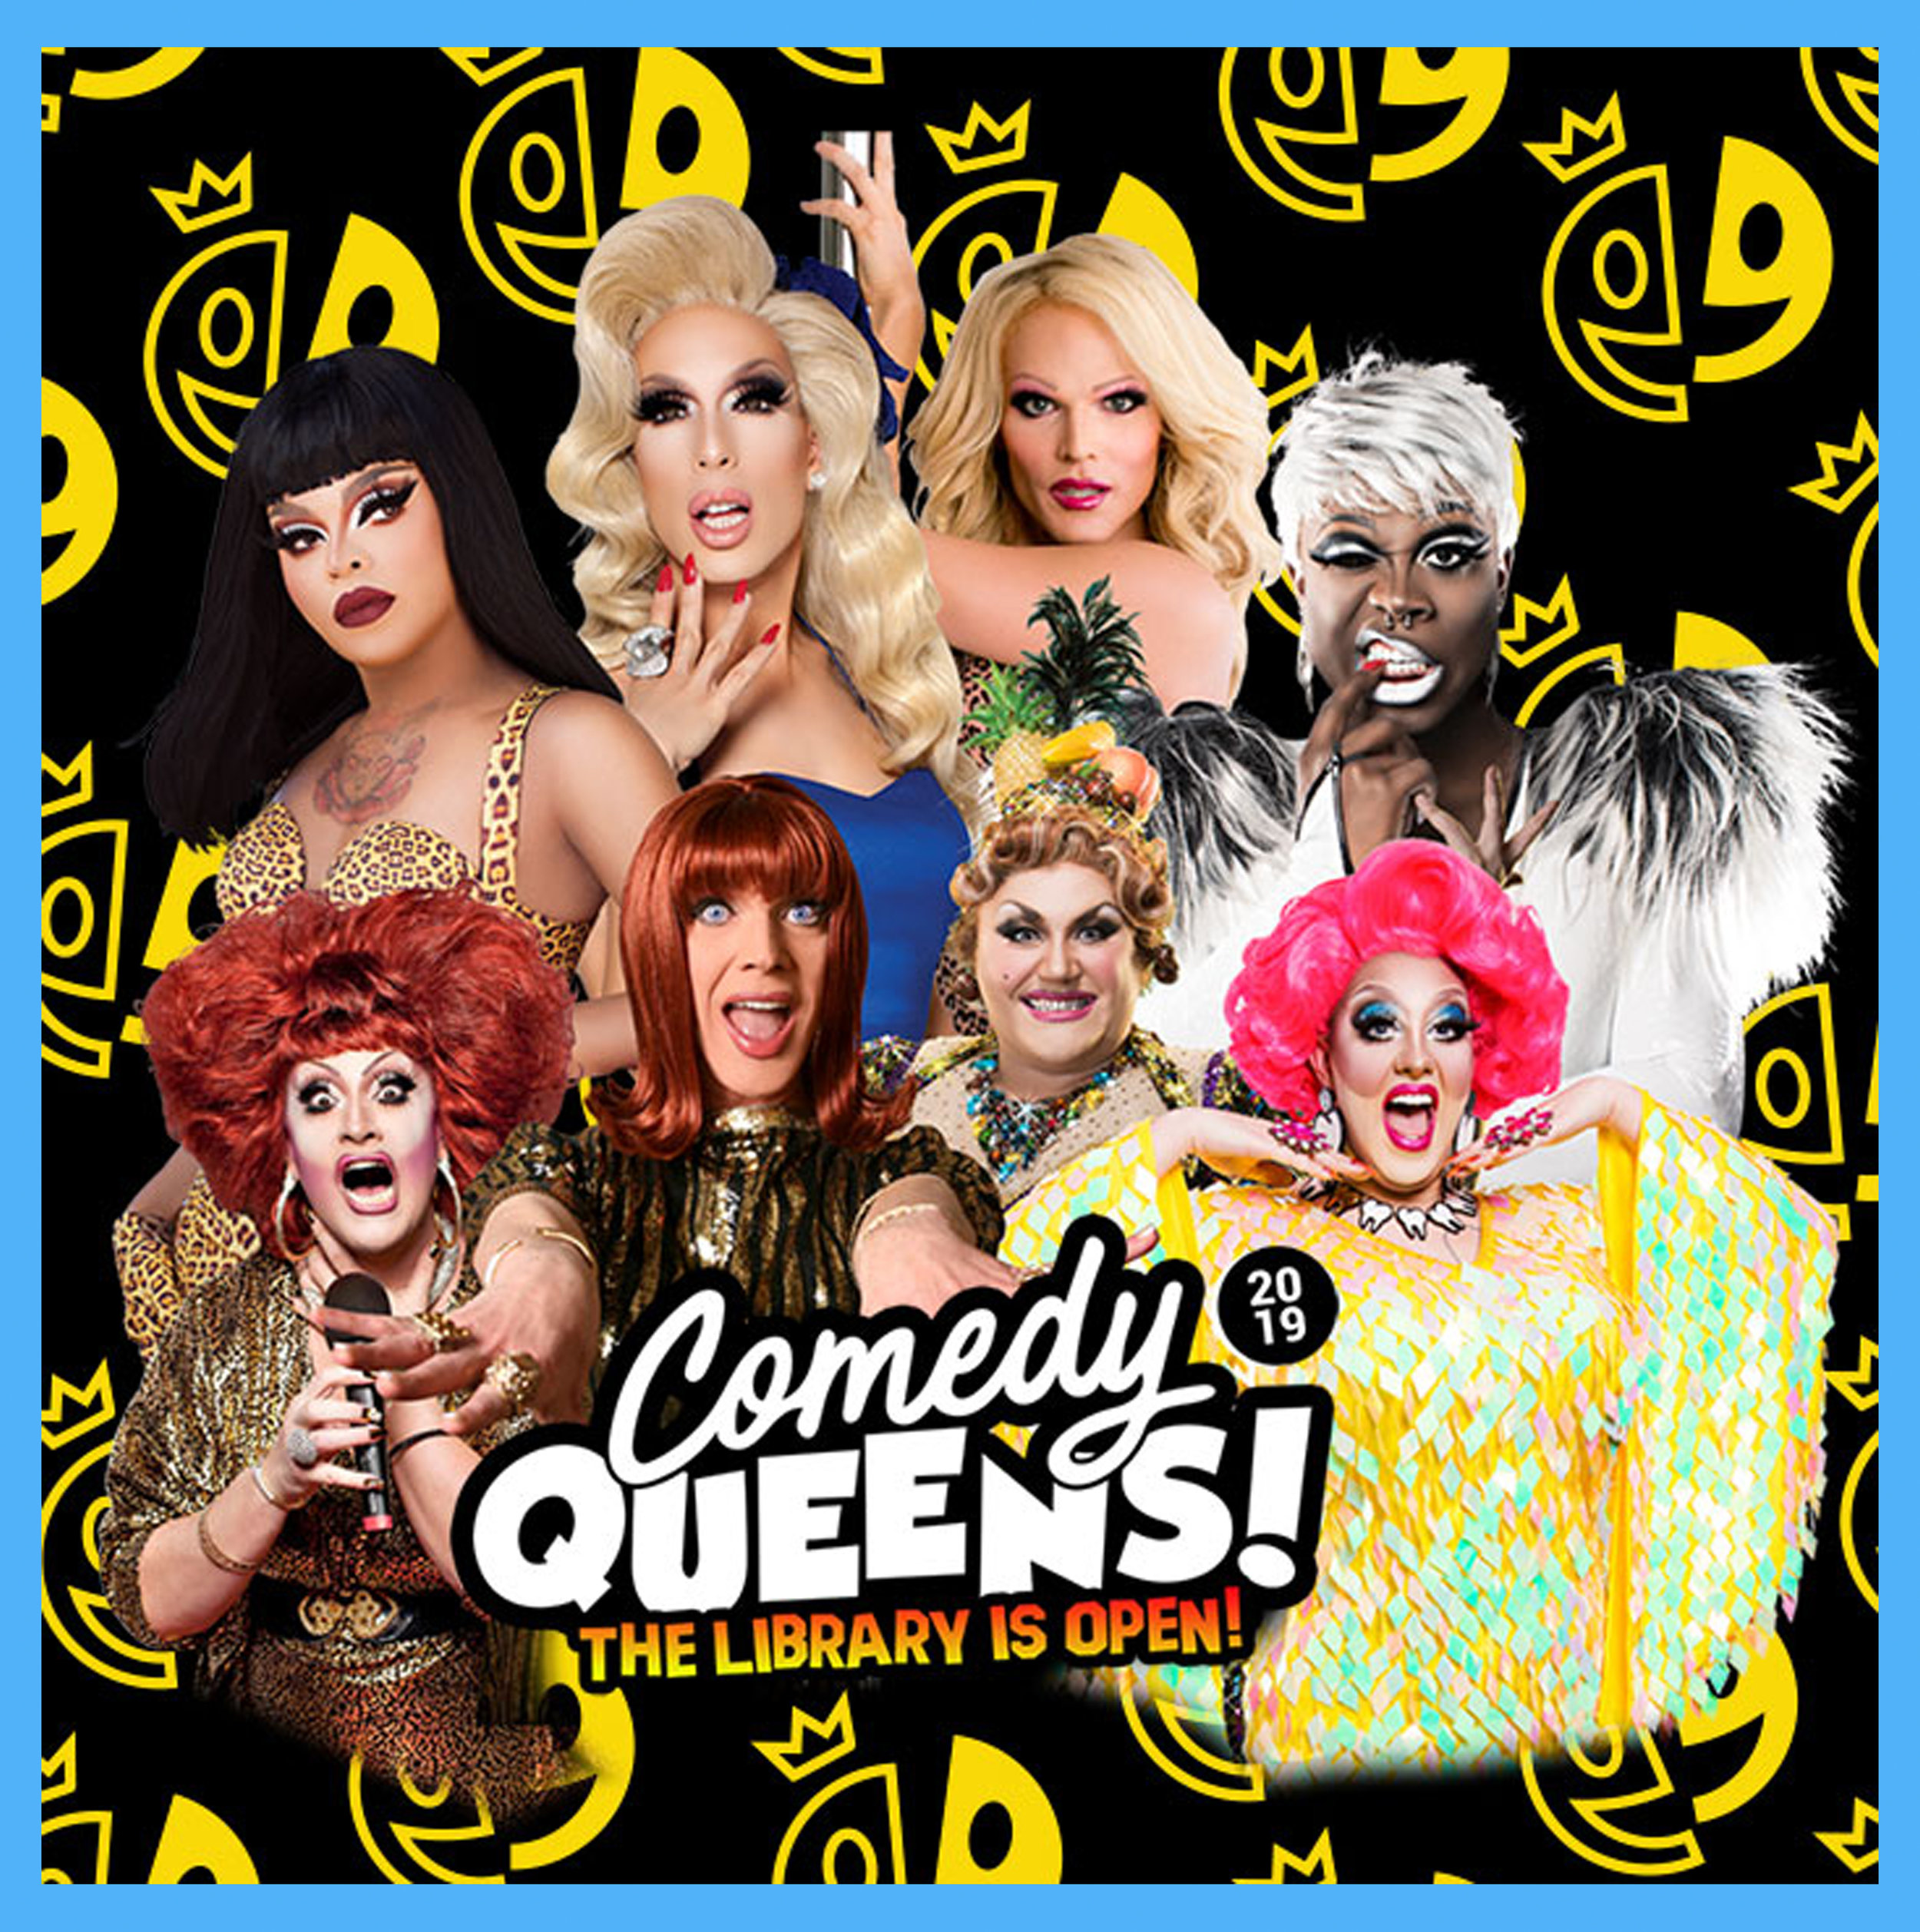 BRISBANE, AU - August 25th, 2019, 7:00PMYou loved laughing your face off this year, now get ready to do it all again in 2019! We'll be bringing you more laughs than you can handle with this international cast of comedy queens. We've got your favourites from Youtube, Drag Race and this year, we're adding some local talent in to the mix.